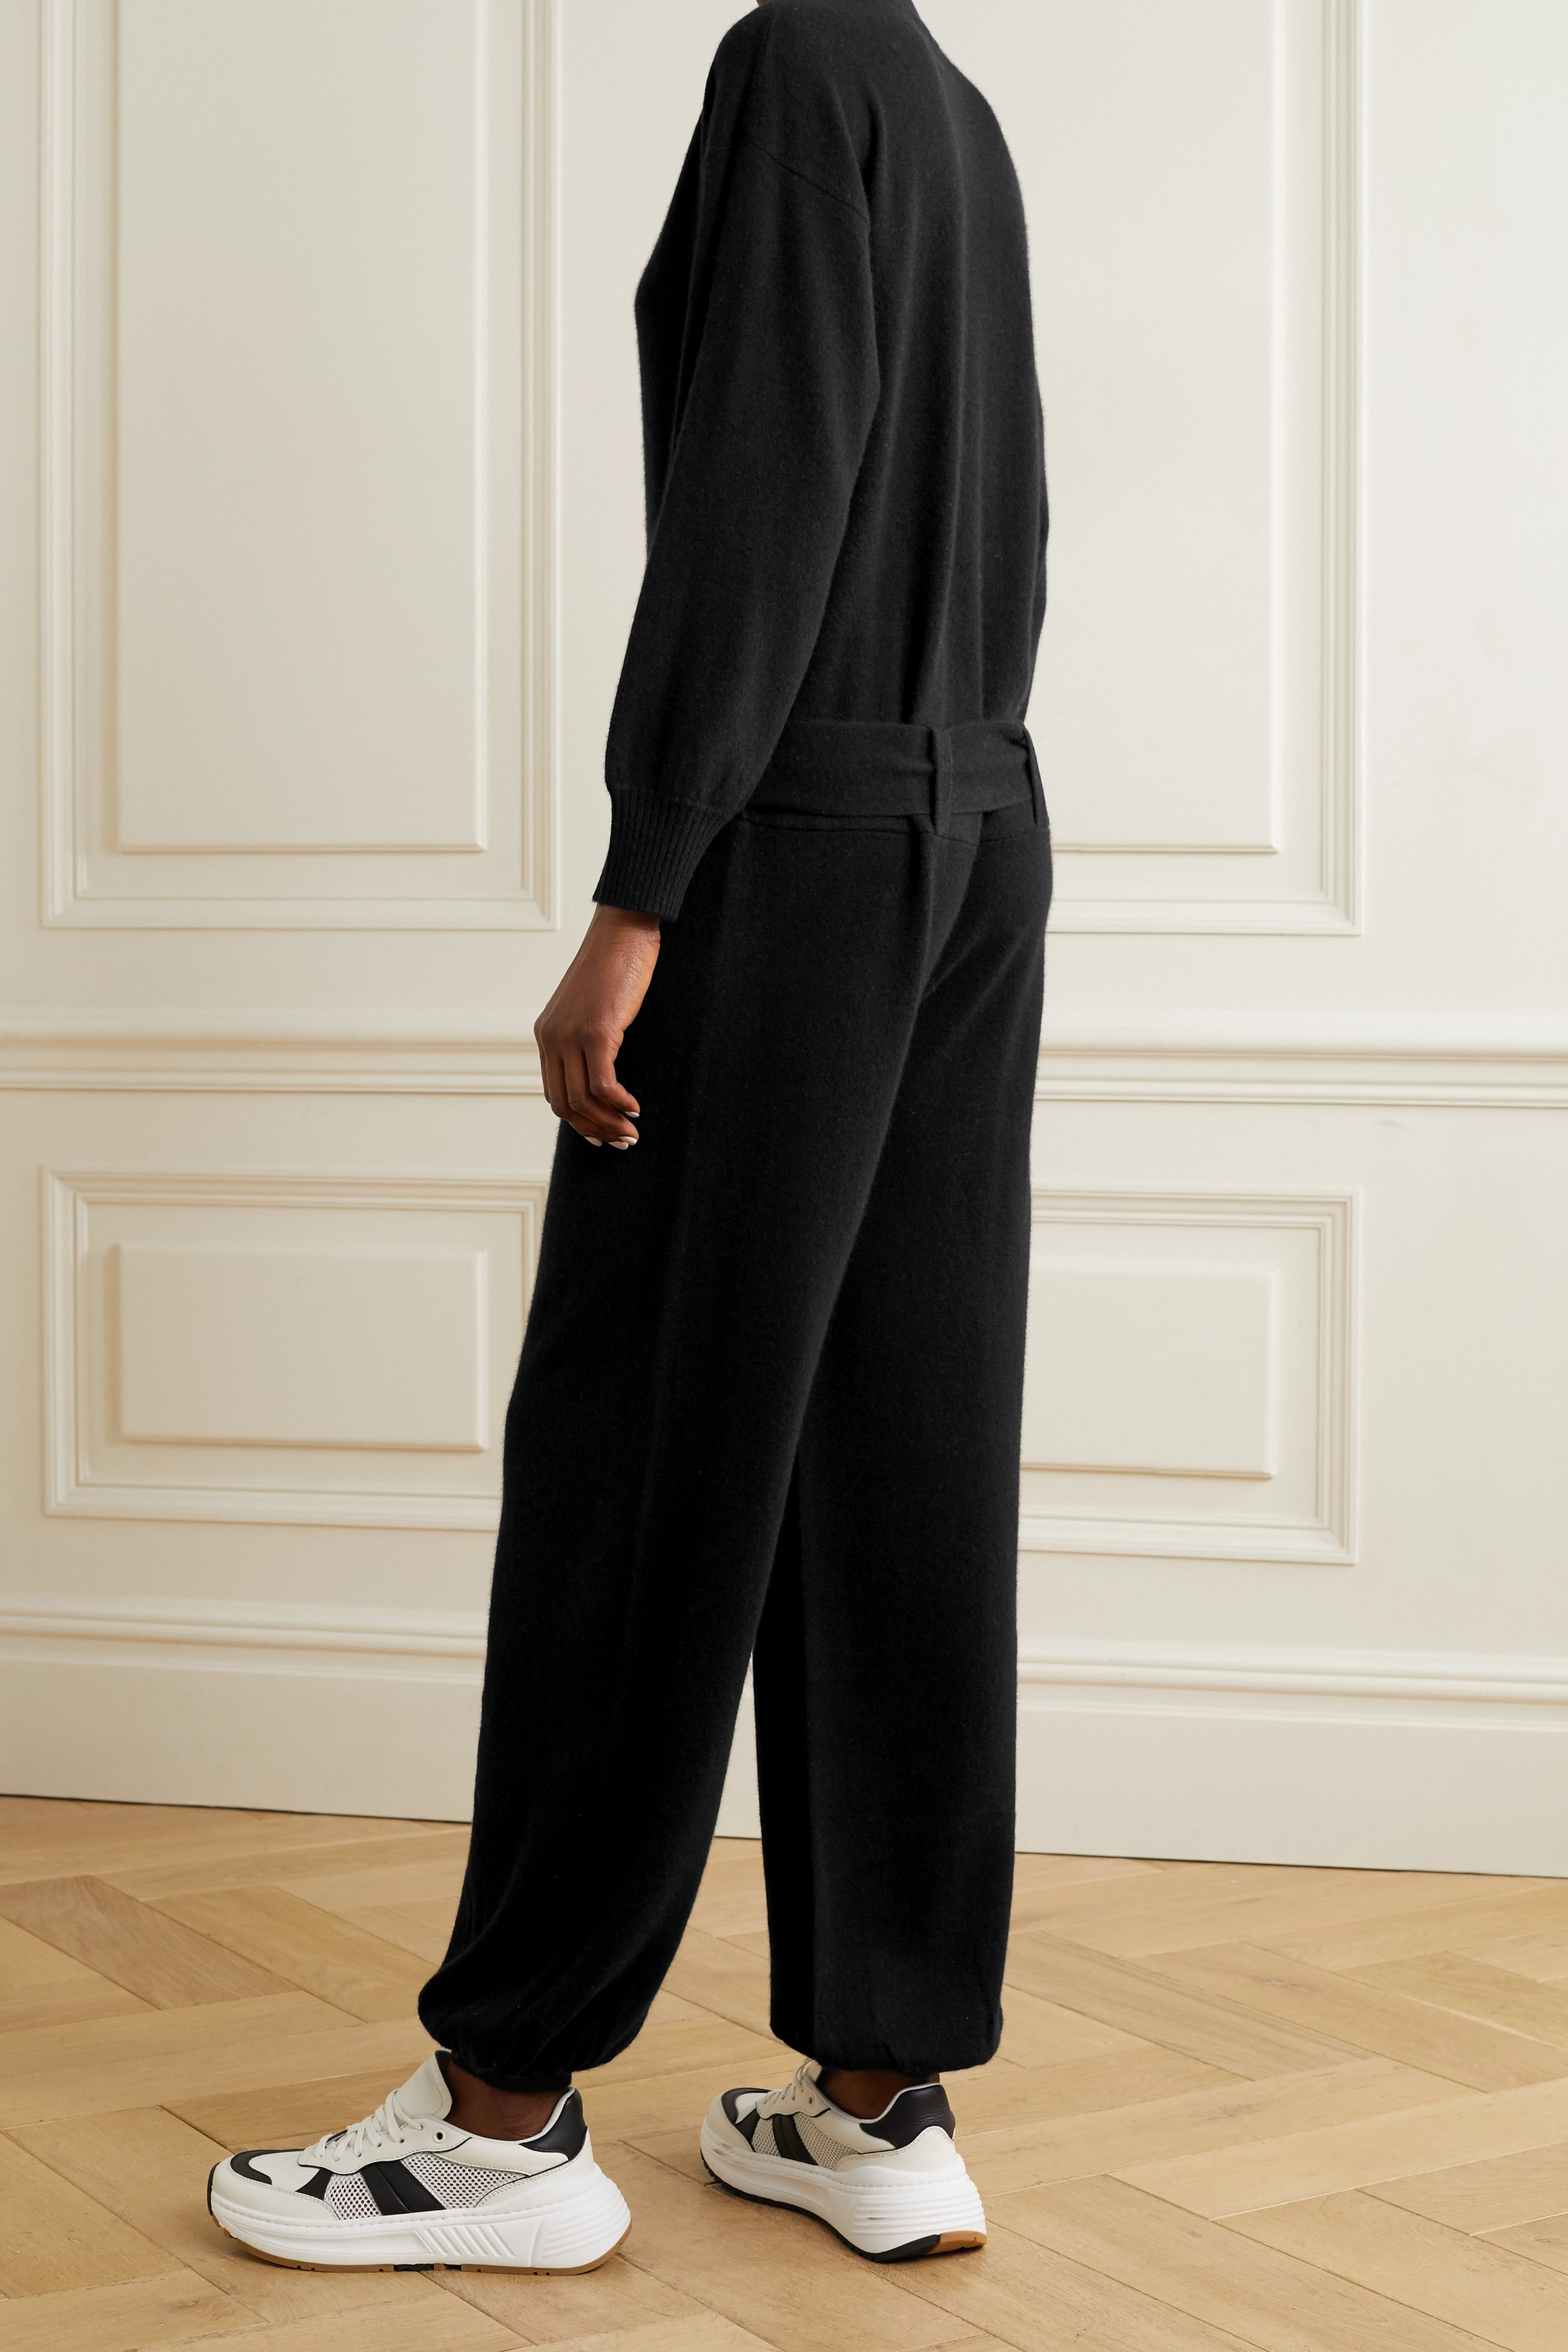 MADELEINE THOMPSON Thurman belted cashmere jumpsuit